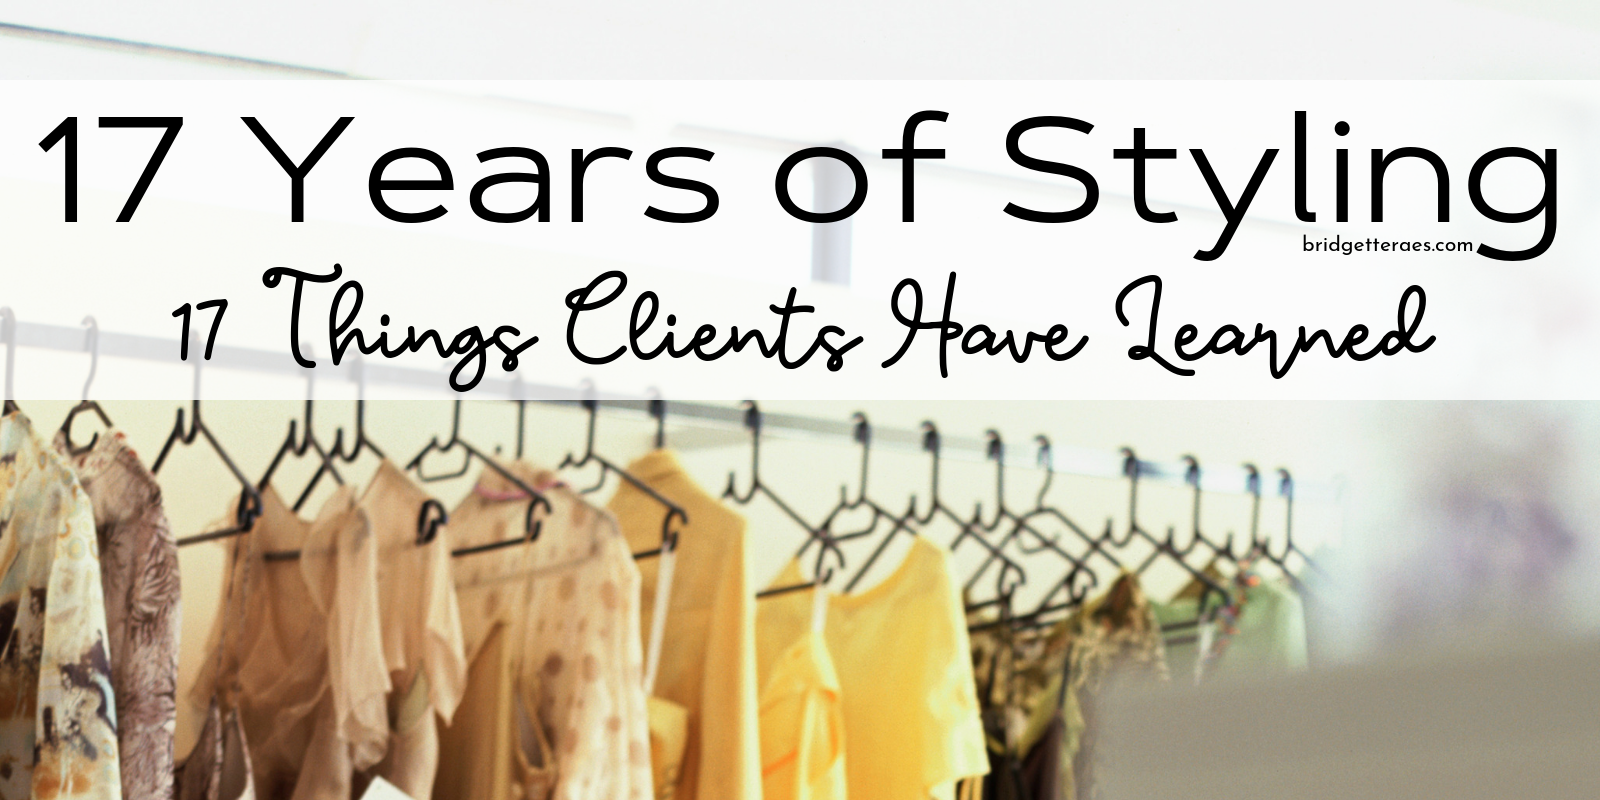 17 Years of Styling: 17 Things Clients Have Learned